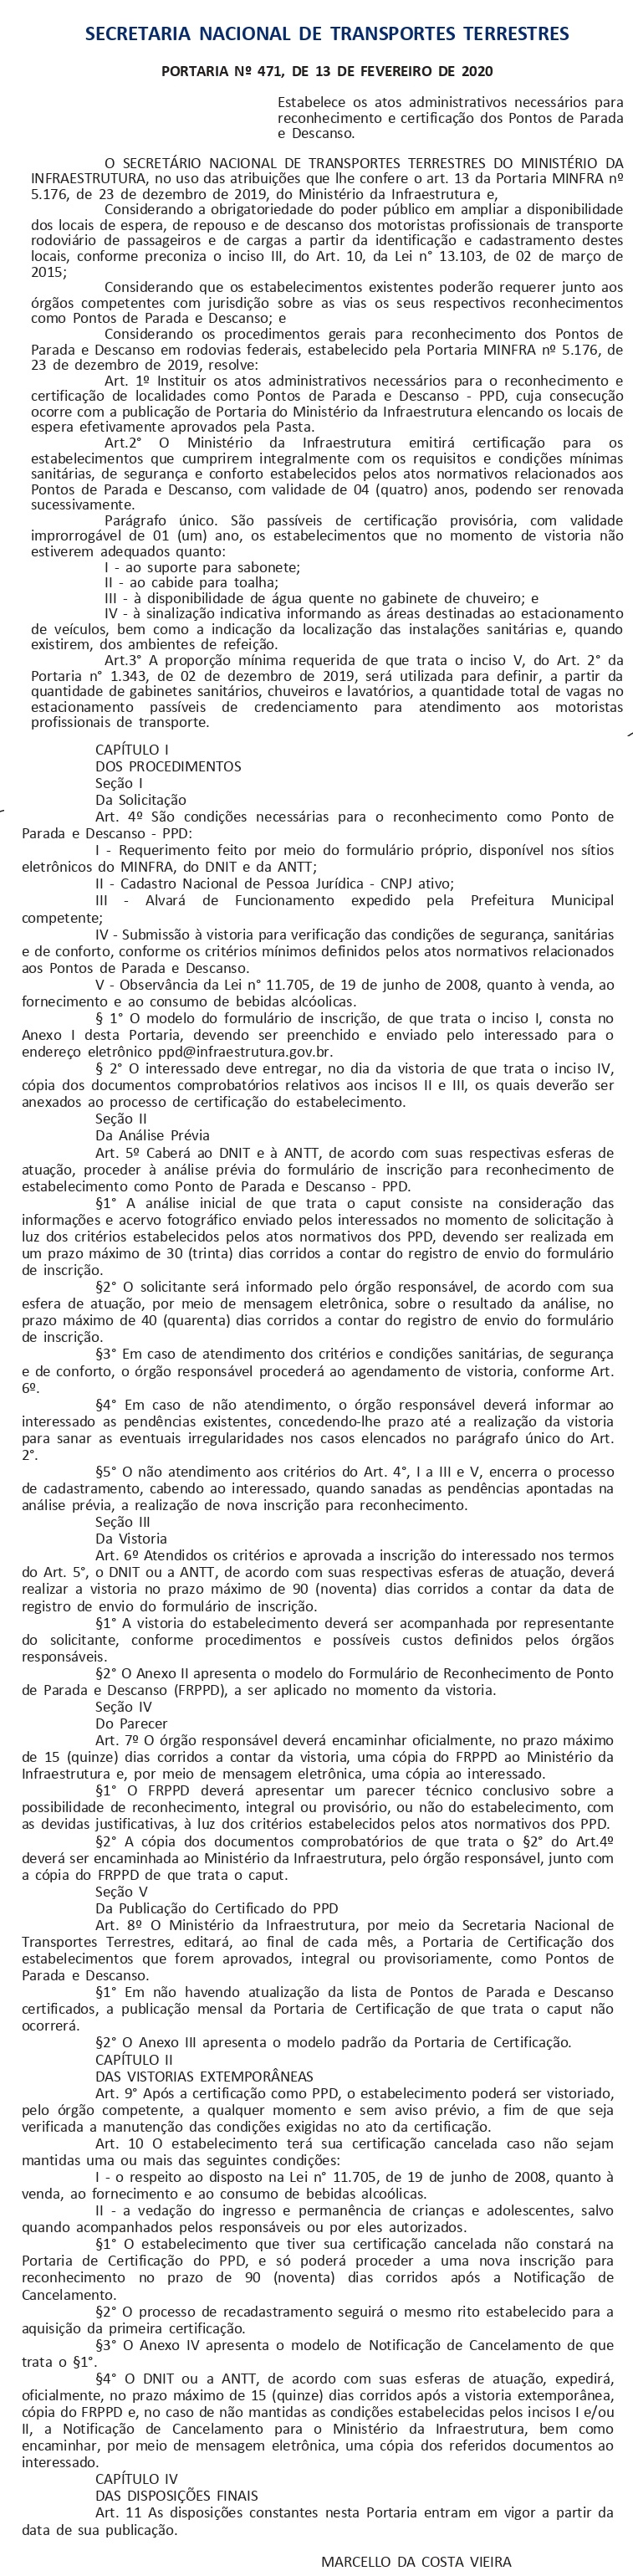 minfra_01_page